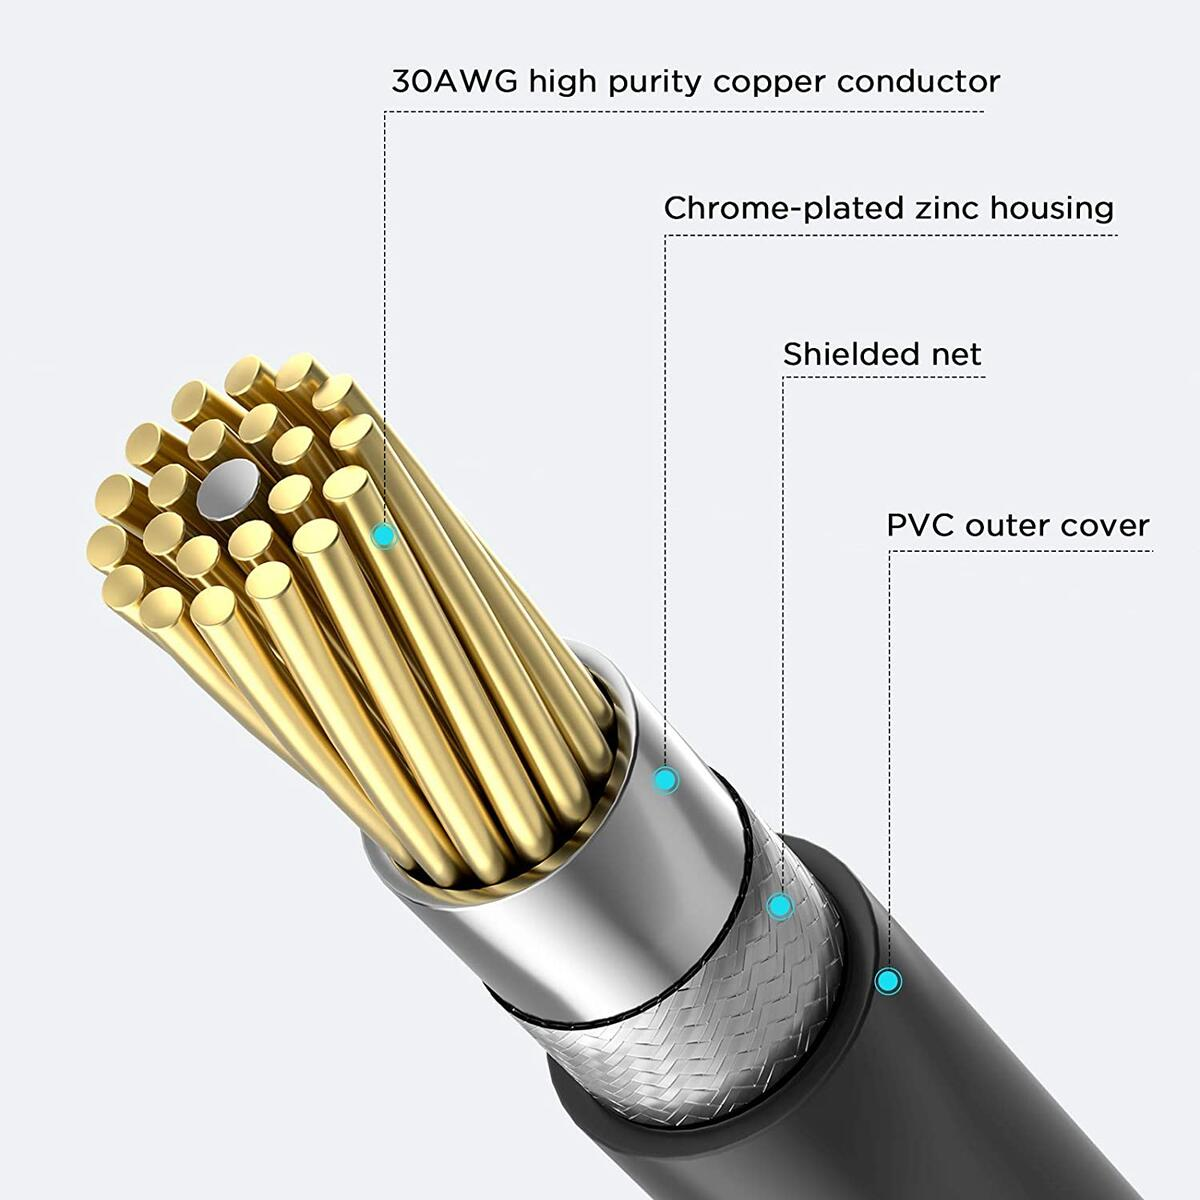 RCA Stereo Cable, 2RCA to 2RCA Cable,Digital & Analogue,Double-Shielded for Headphones,Home System,Car Stereo, iPods, iPhones,MP3 Players and More,RCA Stereo Audio Cable (6FT)